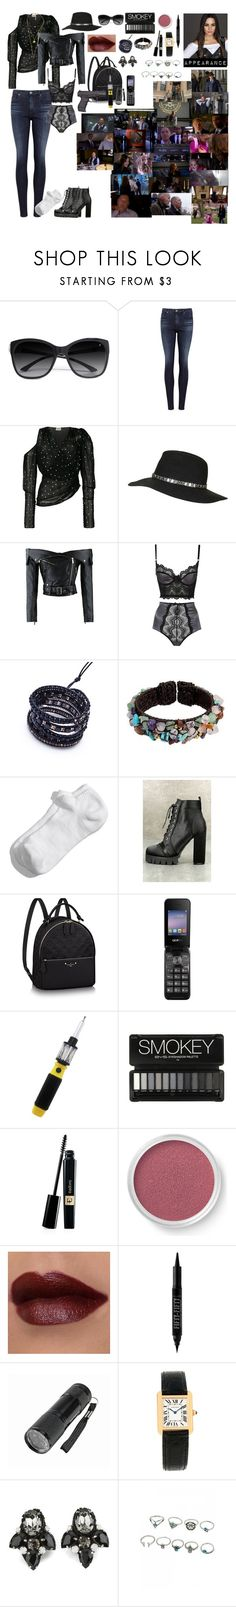 """""""Rebekah """"Beks"""" Reddington sneaks into the """"Post Office"""" to help the FBI and her father - along with Agent Keen - to capture Ranko Zamani"""" by andyarana ❤ liked on Polyvore featuring GUESS by Marciano, AG Adriano Goldschmied, Magda Butrym, Topshop, NAKAMOL, NOVICA, Zella, So Me, Bare Escentuals and Forever 21"""